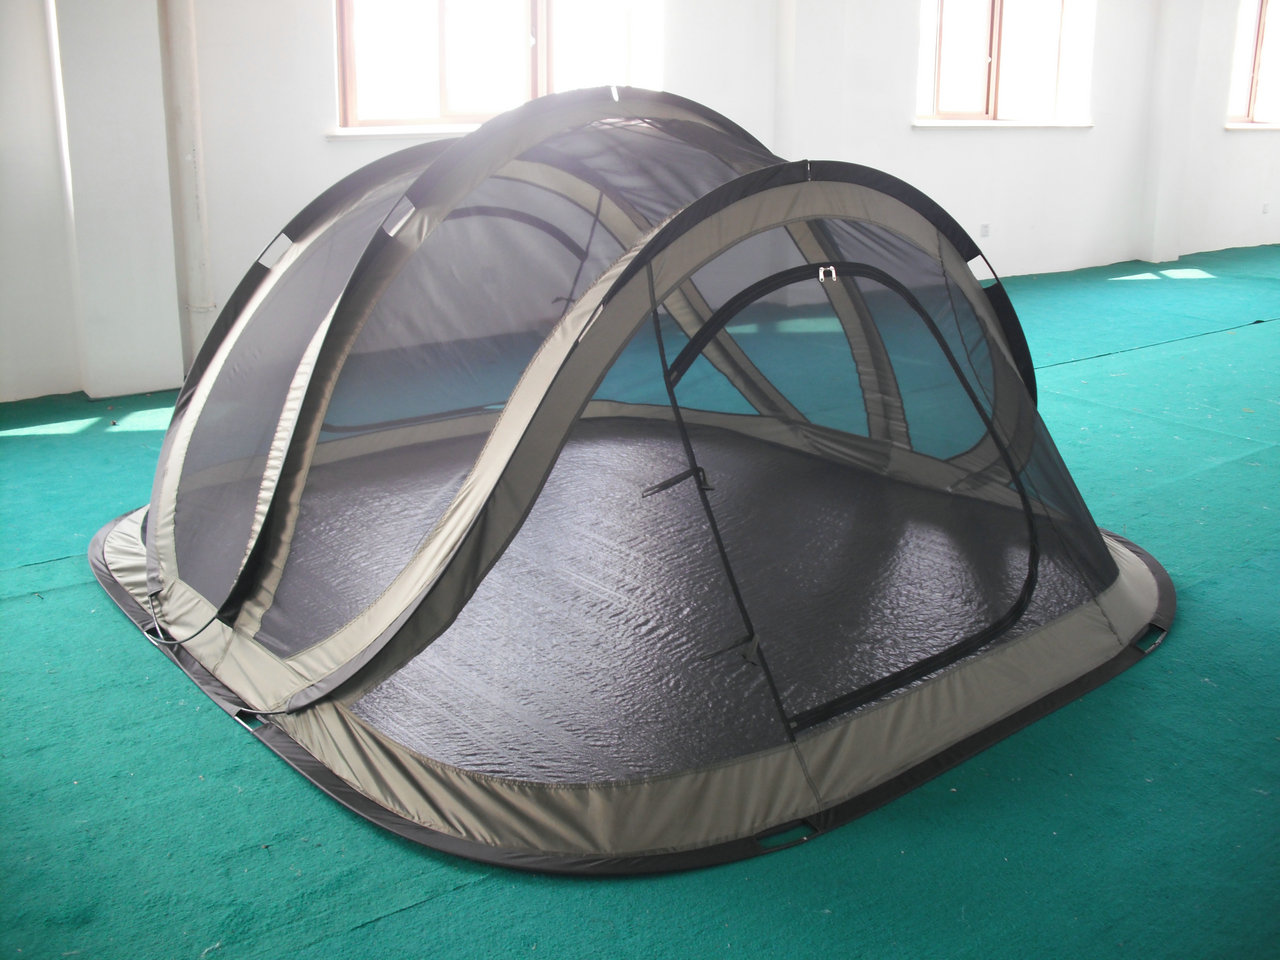 Pop Up Tent News from Our Pinnacle Tents Brand Prototype Tent Shop & Happy Campers - Pinnacle Tents: Pop Up Tent News from Our Pinnacle ...